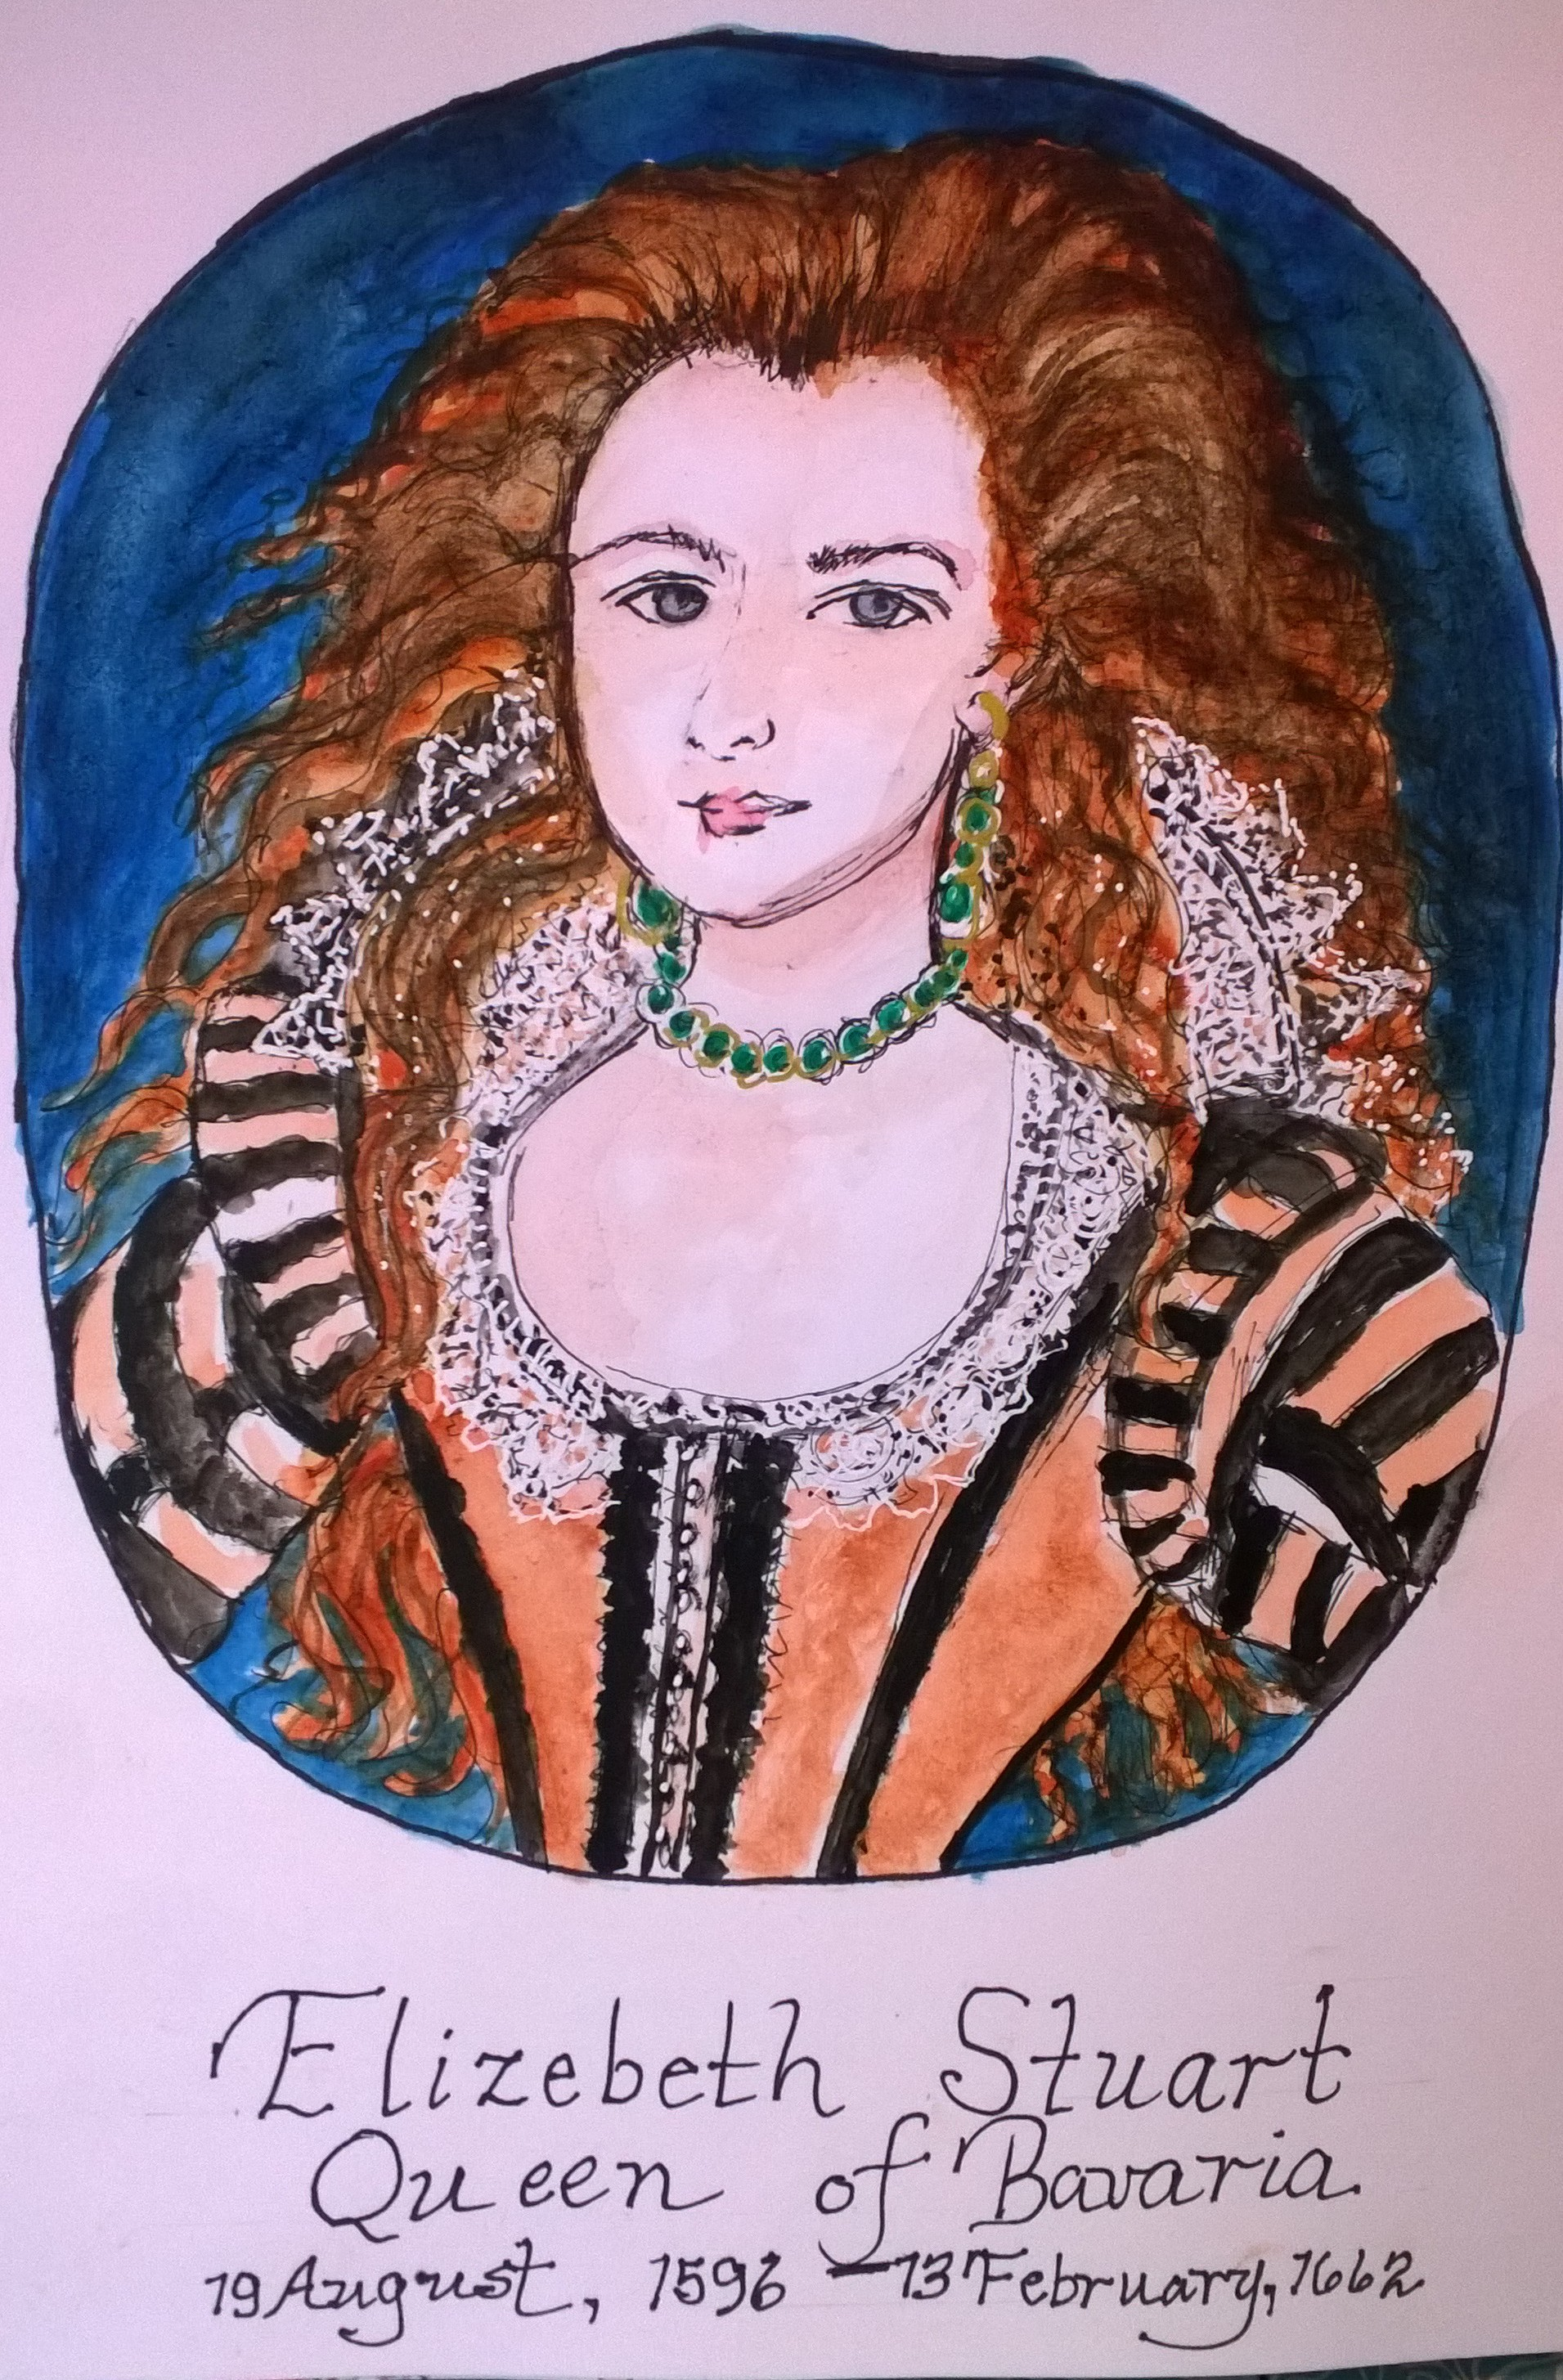 Here she is, Elizabeth Stuart, Queen of Barvaria , (1596-1662), becase queen when her husband, Frederick V was elected as King of Bavaria in 1619 and he was defeated in battke at the beginning of the 30 Year War at the start of the Reformation in 1620.  Elizabeth Stuart was gifted the glorious gate at Heidelberg Castle as a birhtday present for his beloved wife. She was the granddaughter of Mary, Queen of Scots, and daughter of James I of England (James VI of Scotland). Elizabeth and Frederick V of Bavaria were married to each other at the young age of 16, February 14, 1613 in London, stayed in England 2 months, then headed to the Electoral Court of Heidelberg in 1613.  The couple had 13 children, and when Frederick died at age 38 of fever, Elizabeth was devastated. She was exiled to the Hague, then returned to England in 1661, and died of pneumonia in 1662. What a life story of a princess of both Scotland and England, then Queen of Bavaria!